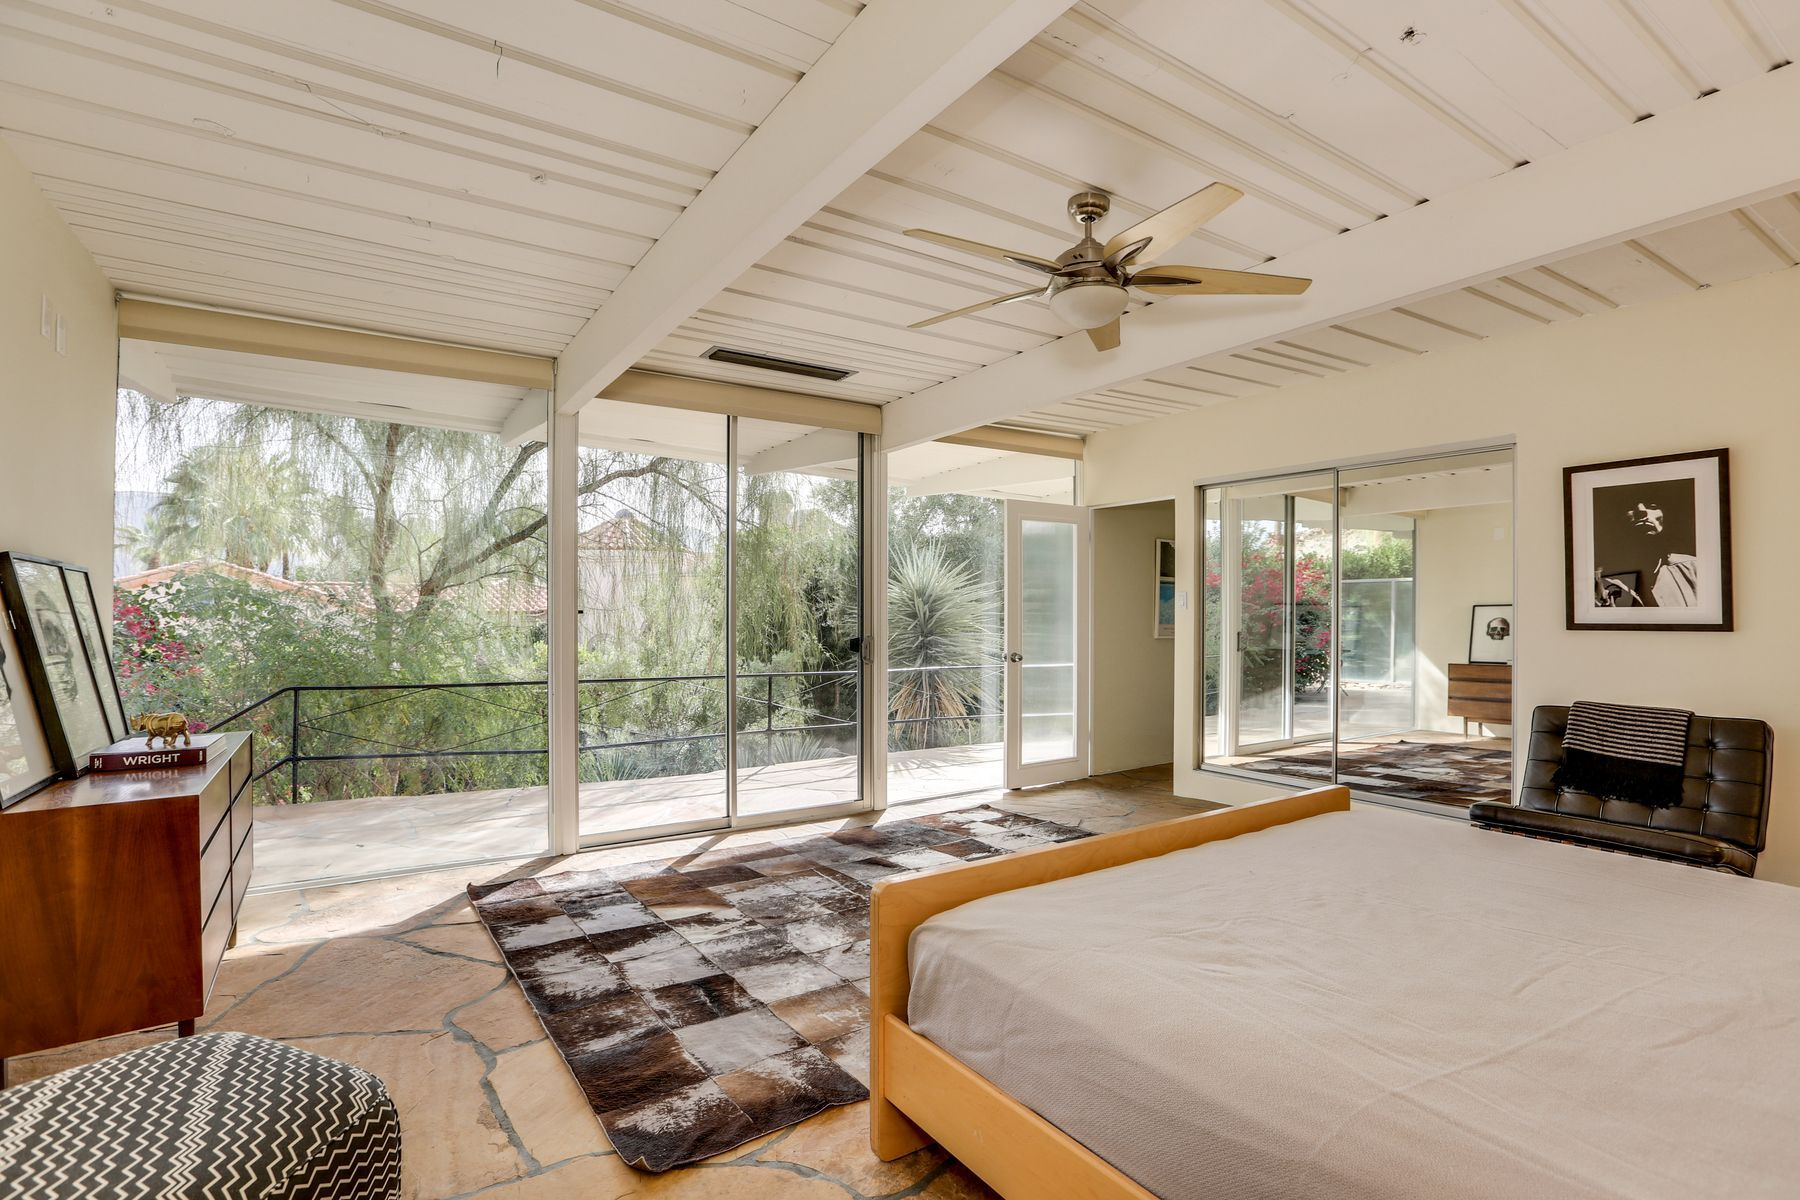 Zsa Zsa Gabors Palm Springs Midcentury is on the market